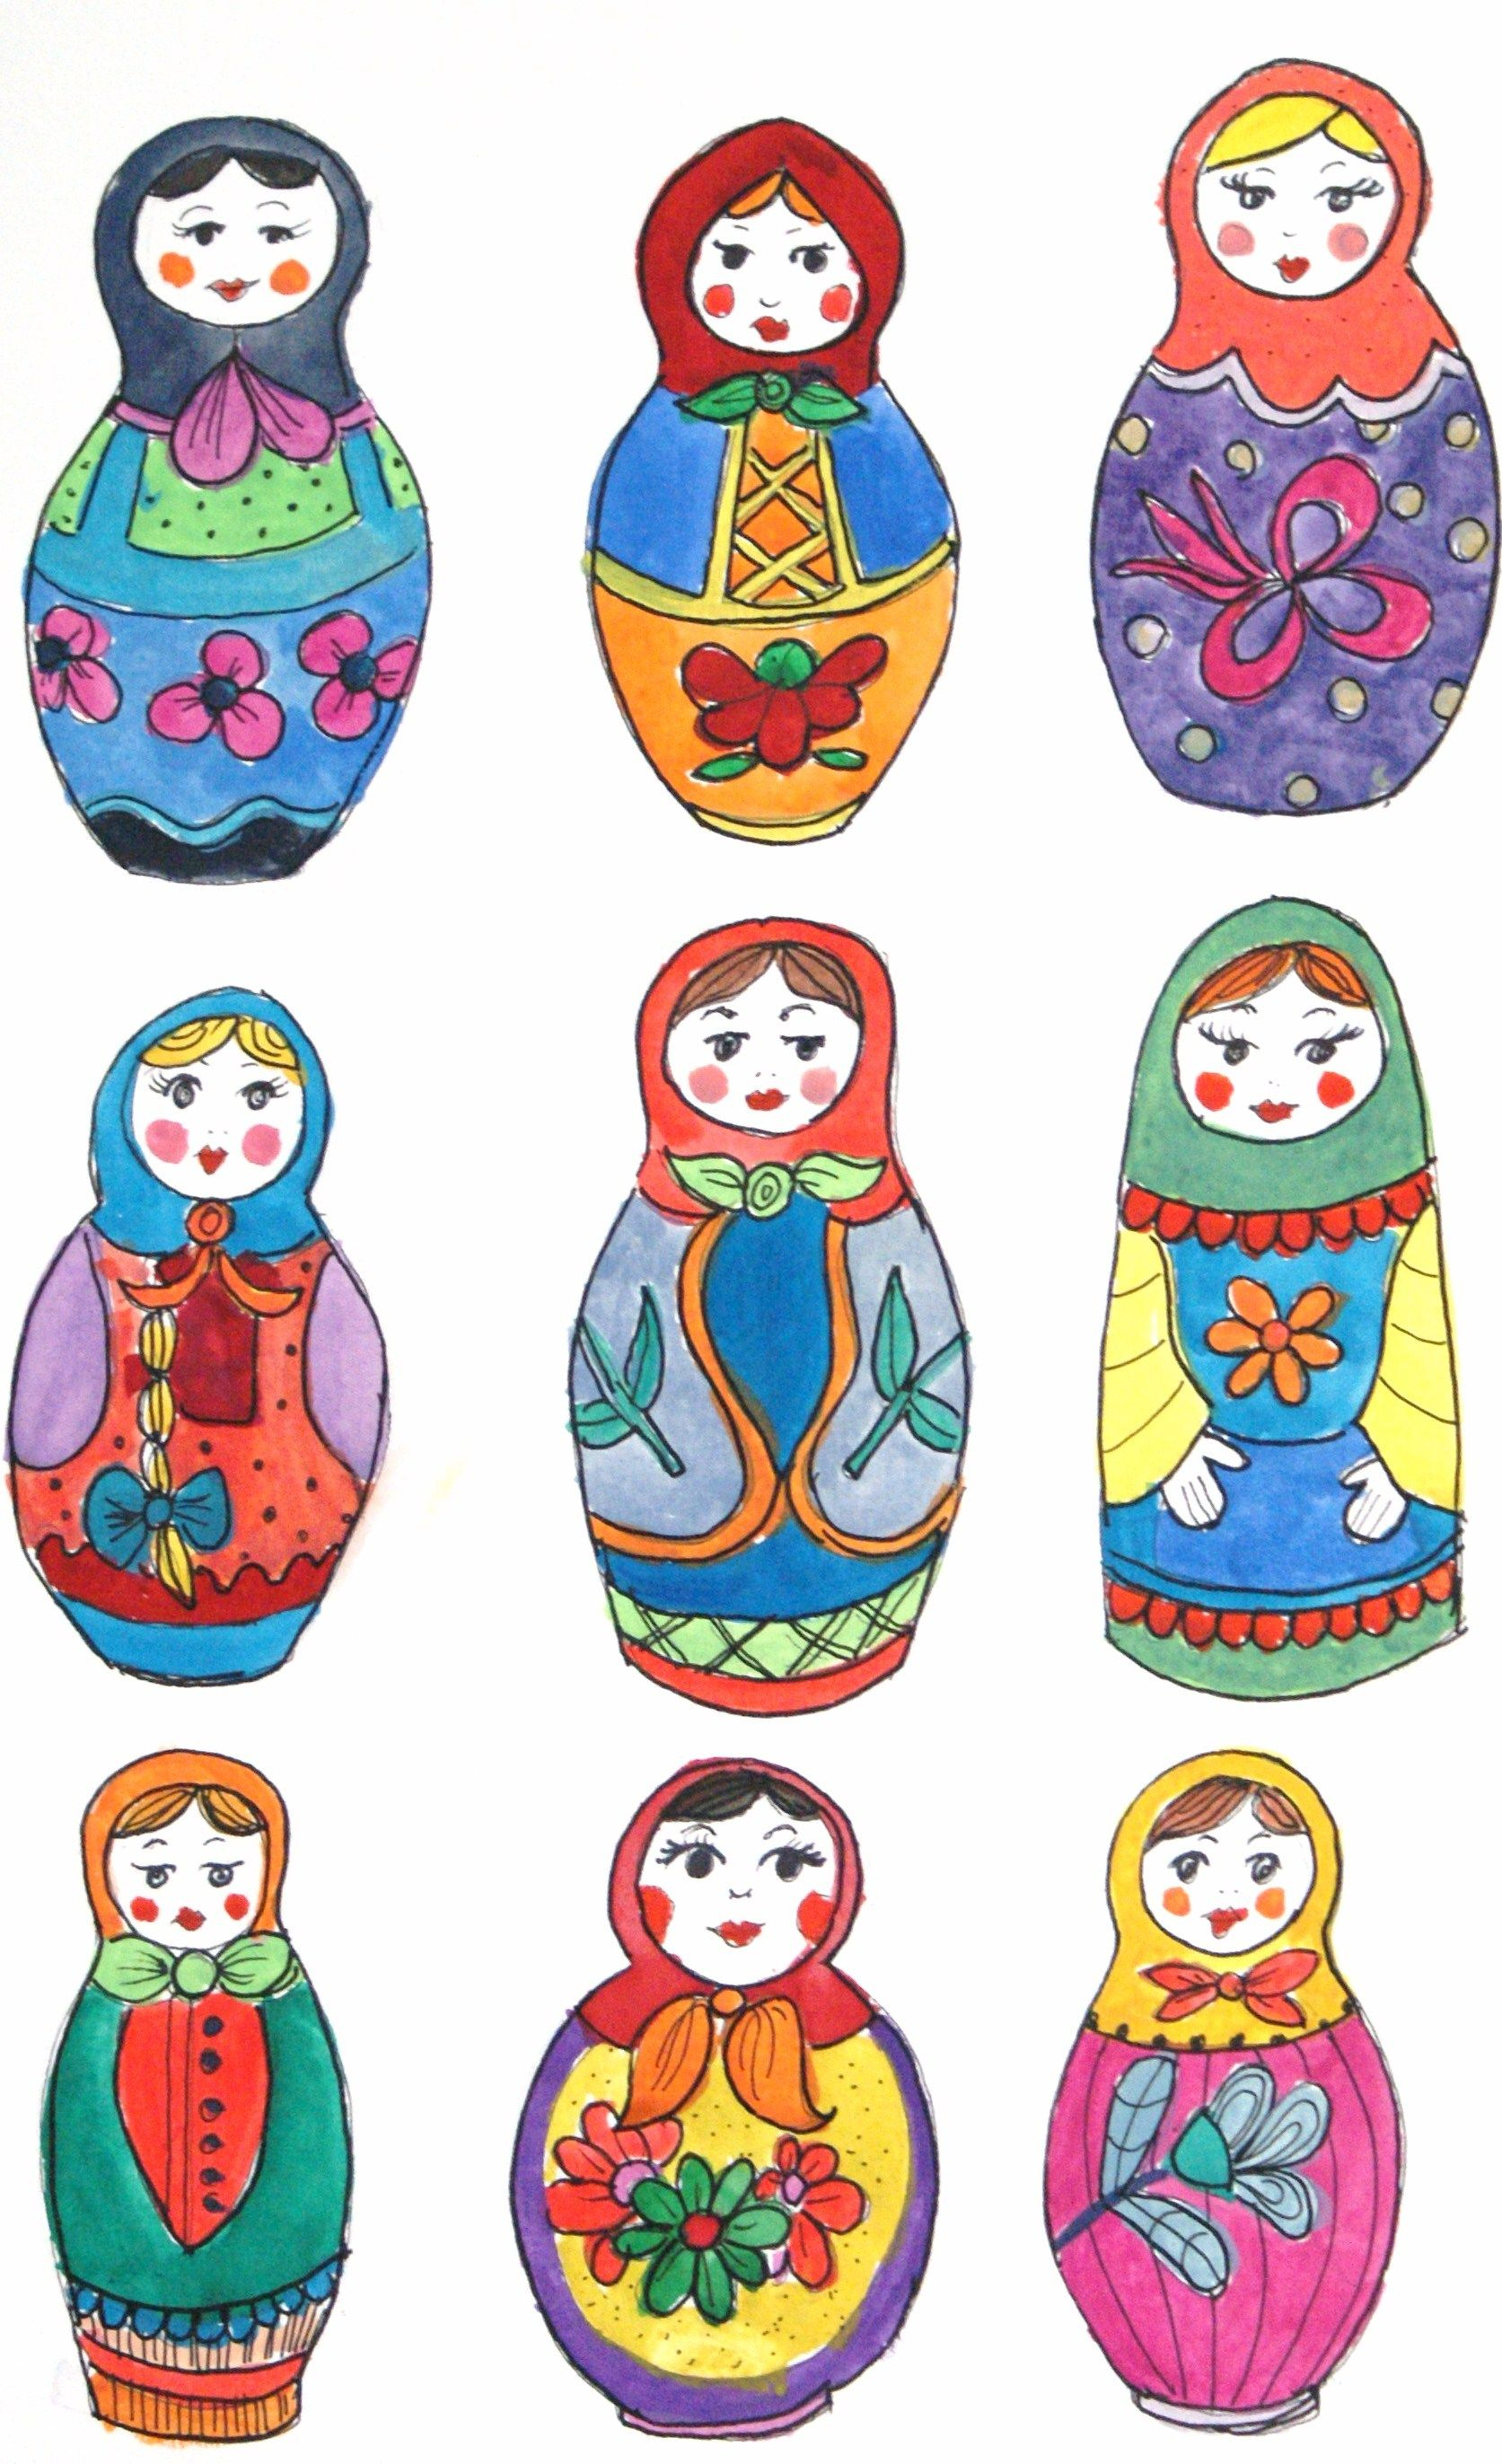 russian doll drawing at getdrawings com free for personal use